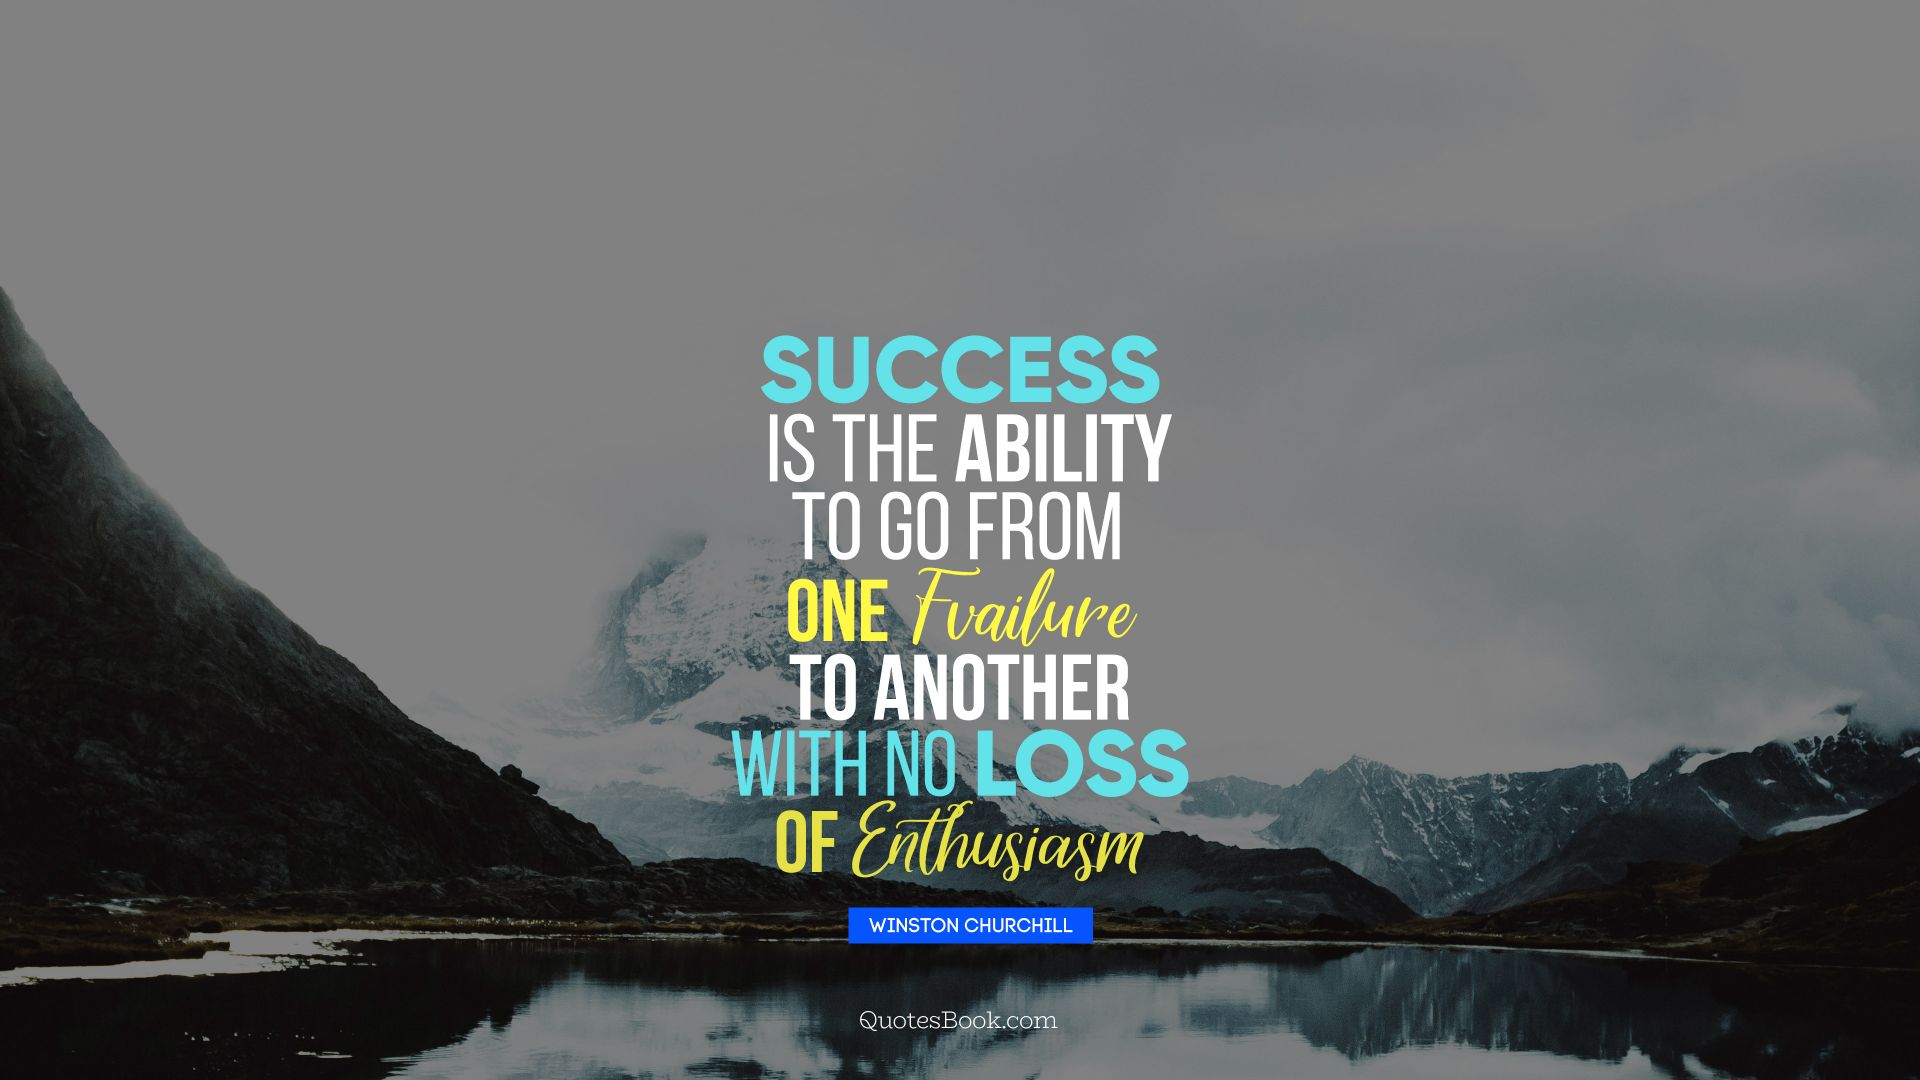 Success is the ability to go from one failure to another with no loss of enthusiasm. - Quote by Winston Churchille